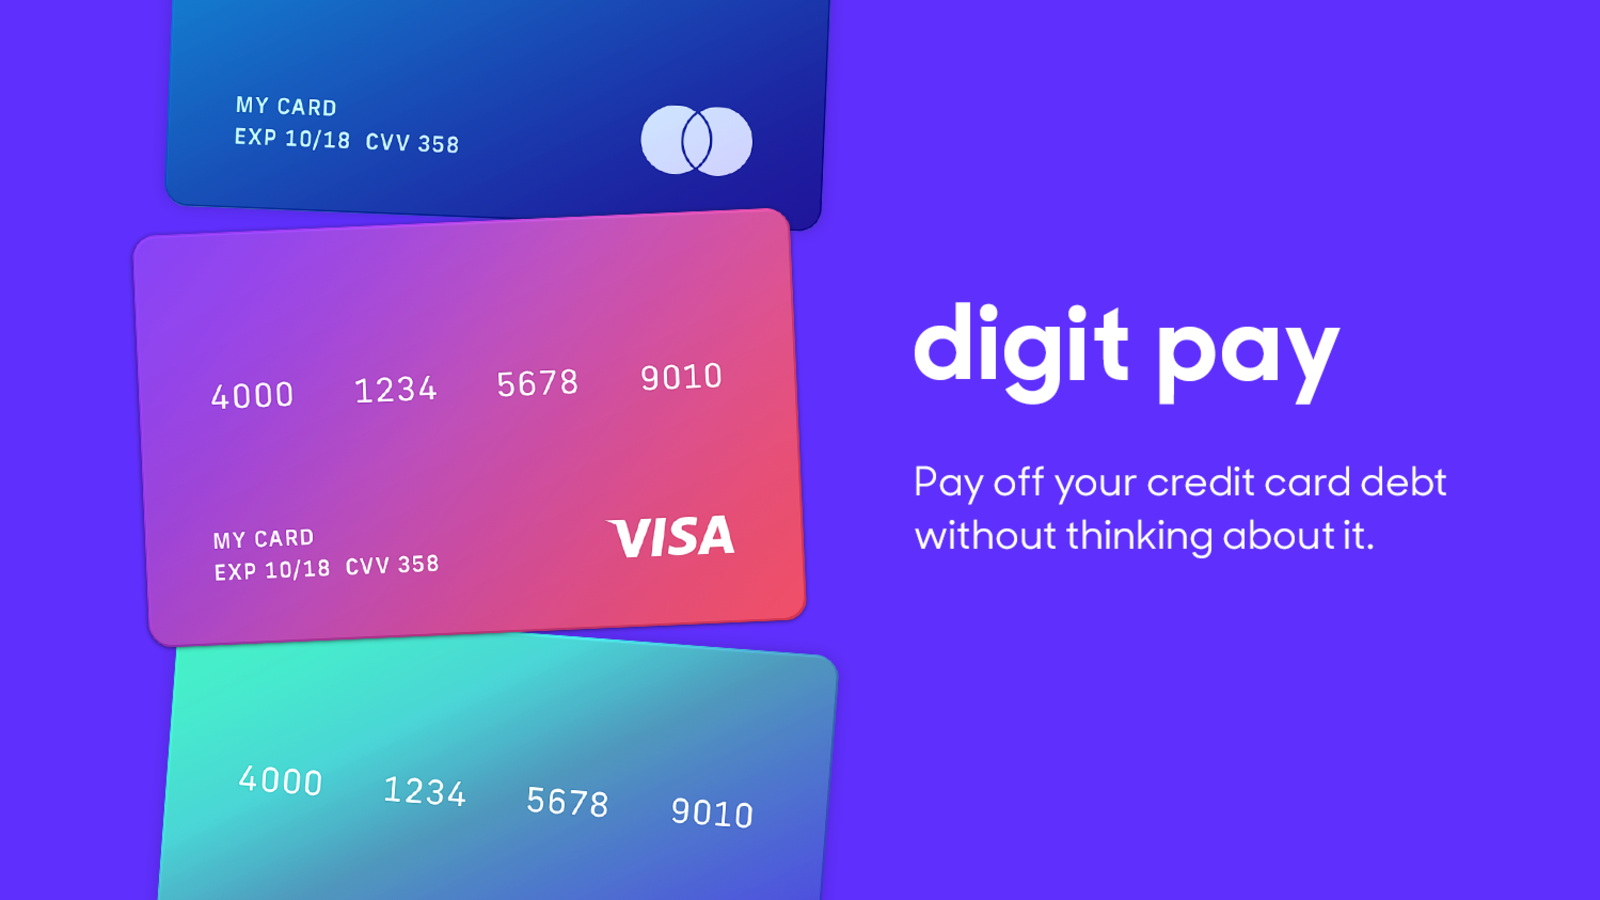 Pay Off Your Credit Card Debt With The Help Of The Savings App Digit Credit Card Design Credit Card App Credit Cards Debt